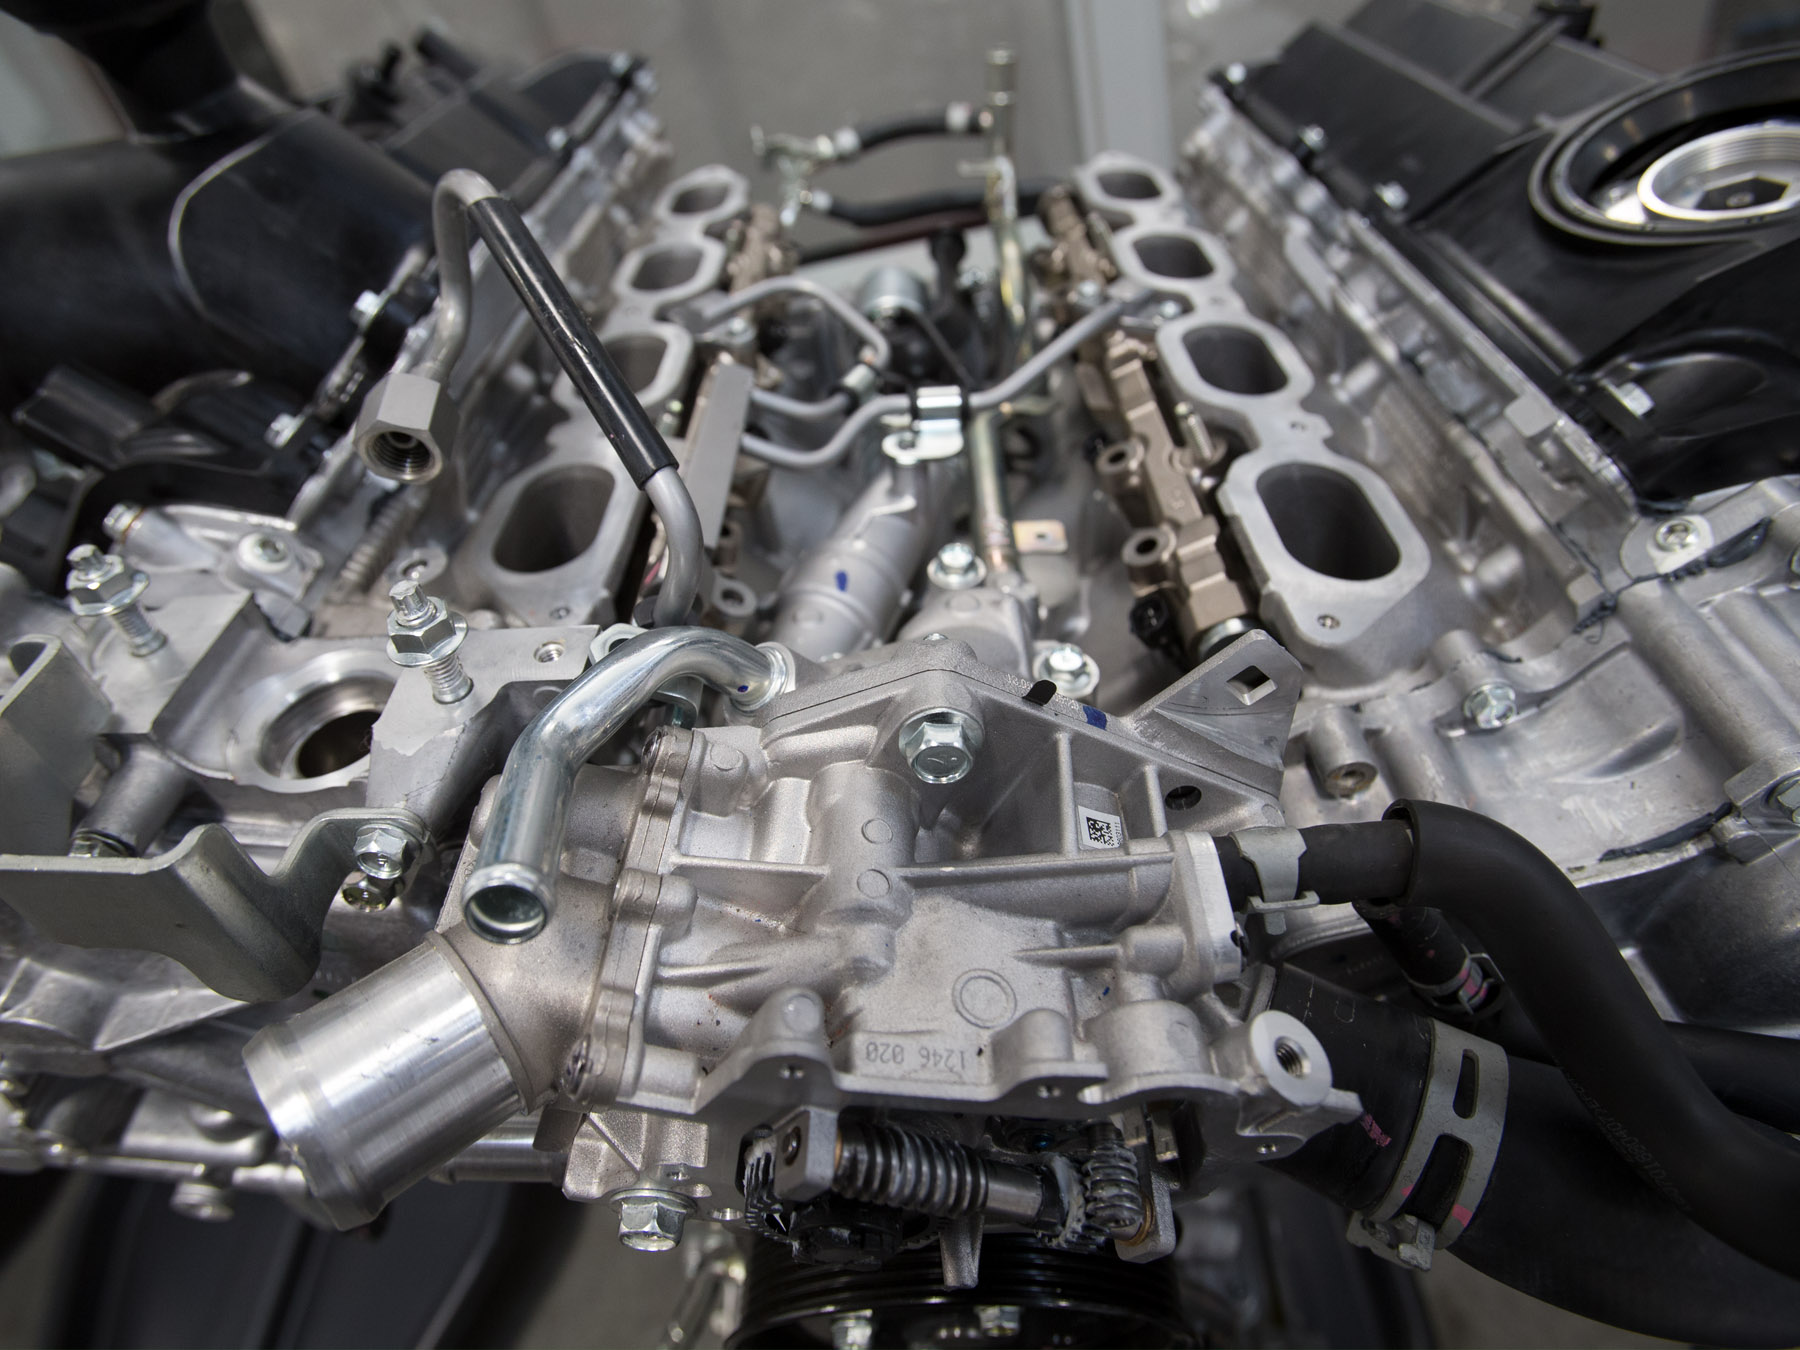 Close up of an engine in the infinite auto lab